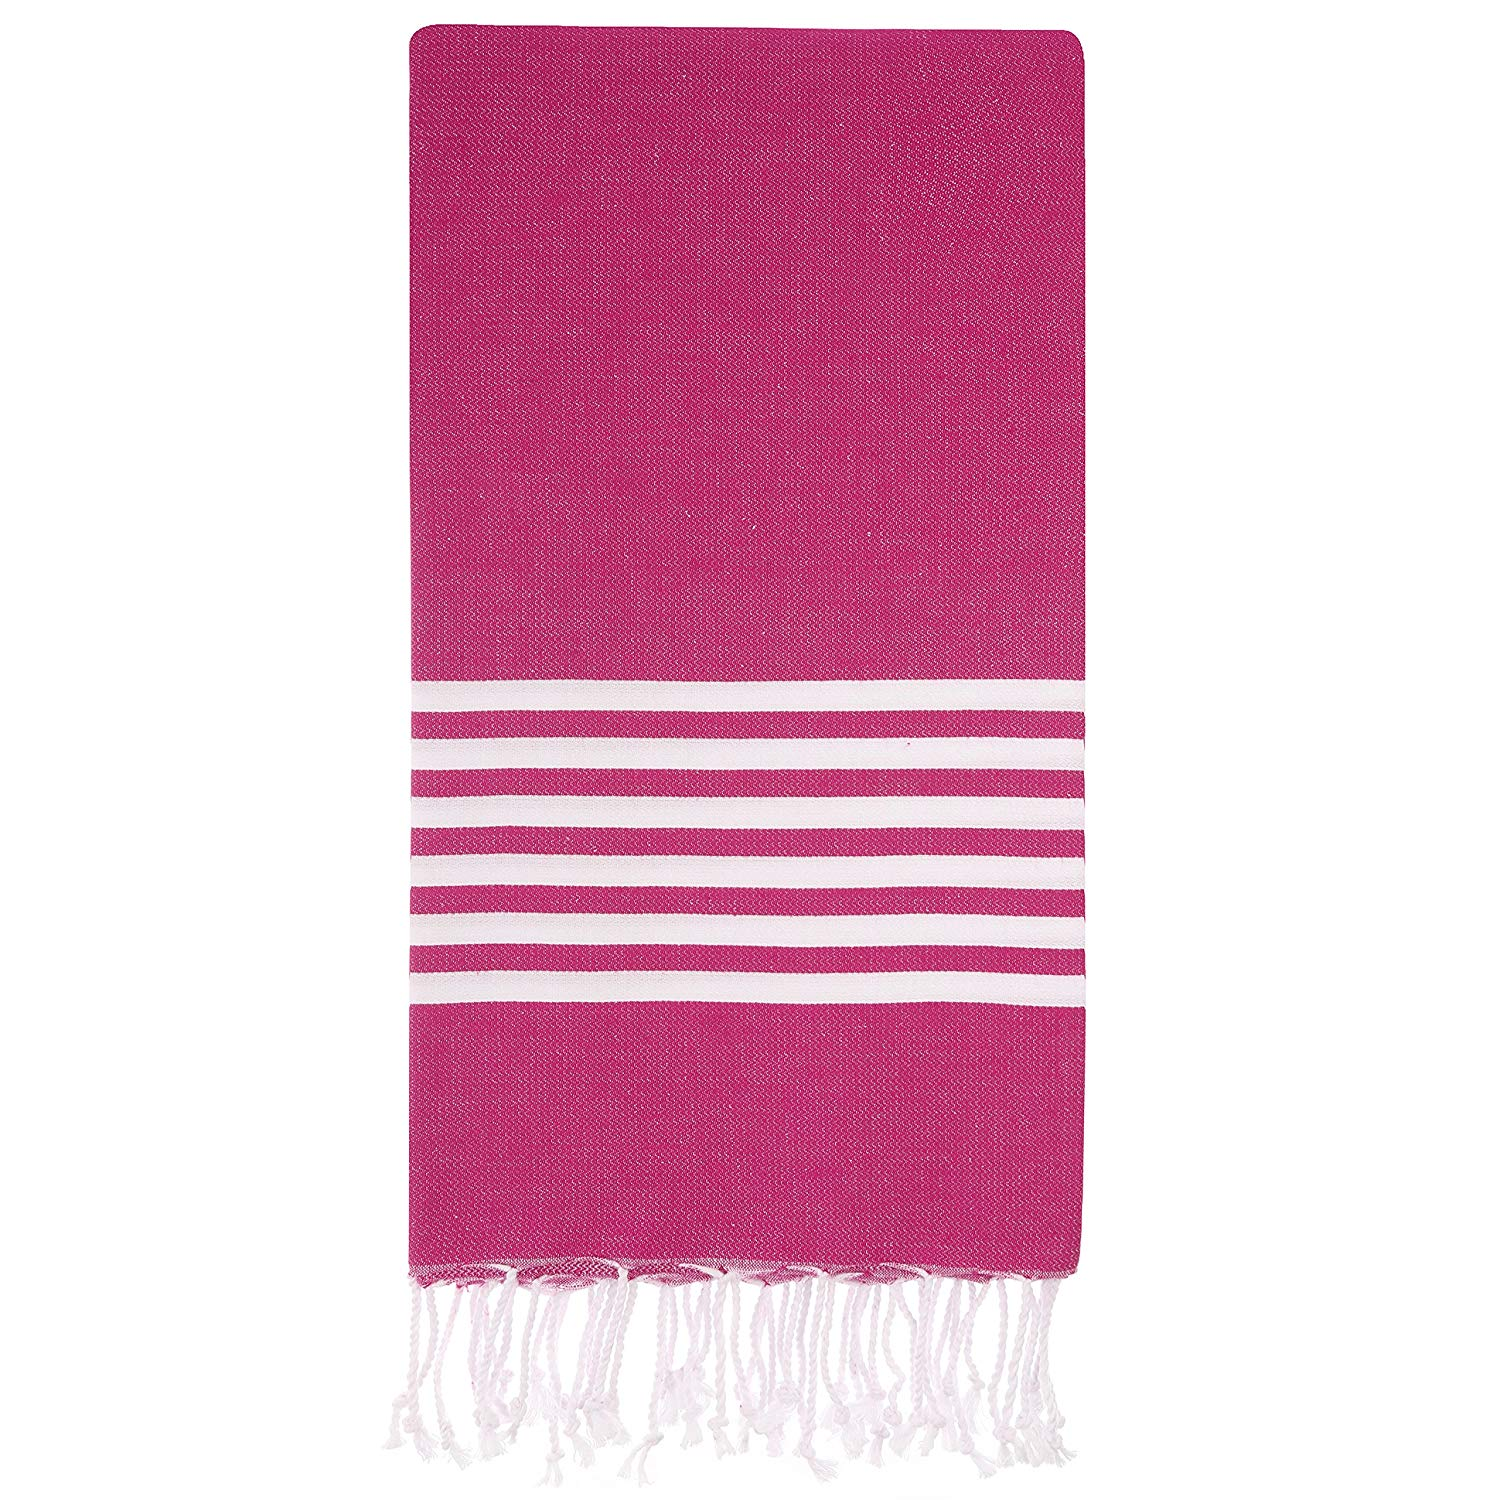 a71692ca47 Get Quotations · CACALA Neon Series - Turkish Bath Towels - Traditional  Peshtemal Design for Bathrooms